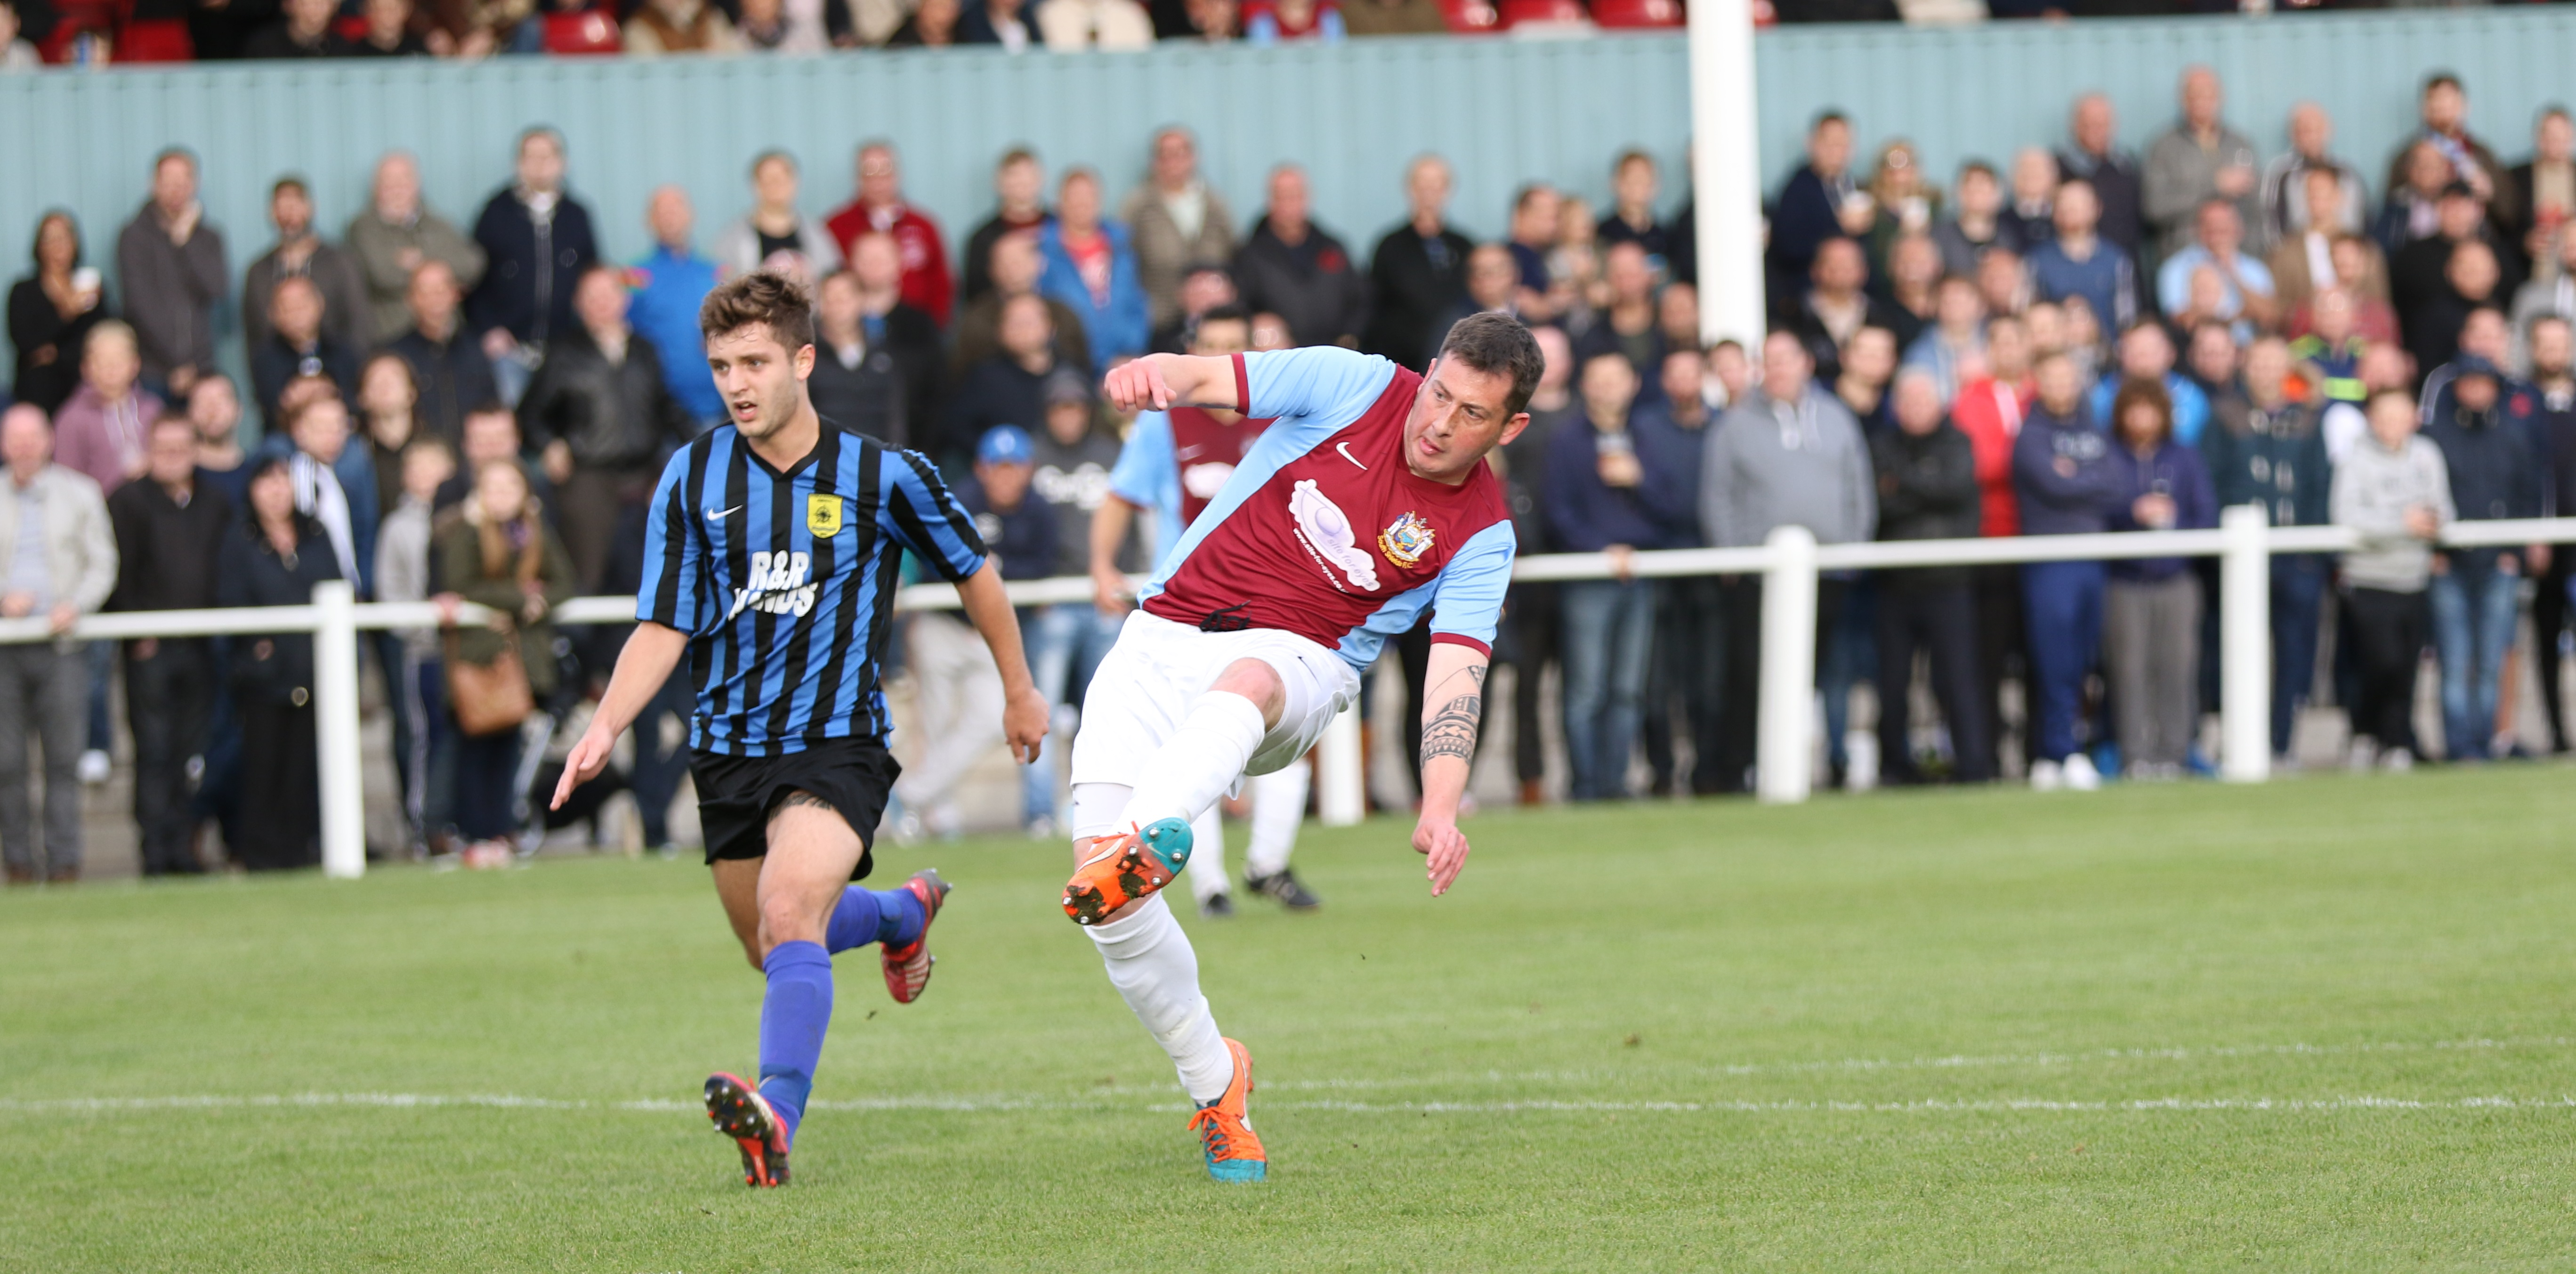 In Pictures: South Shields 4-0 Ryton & Crawcrook Albion